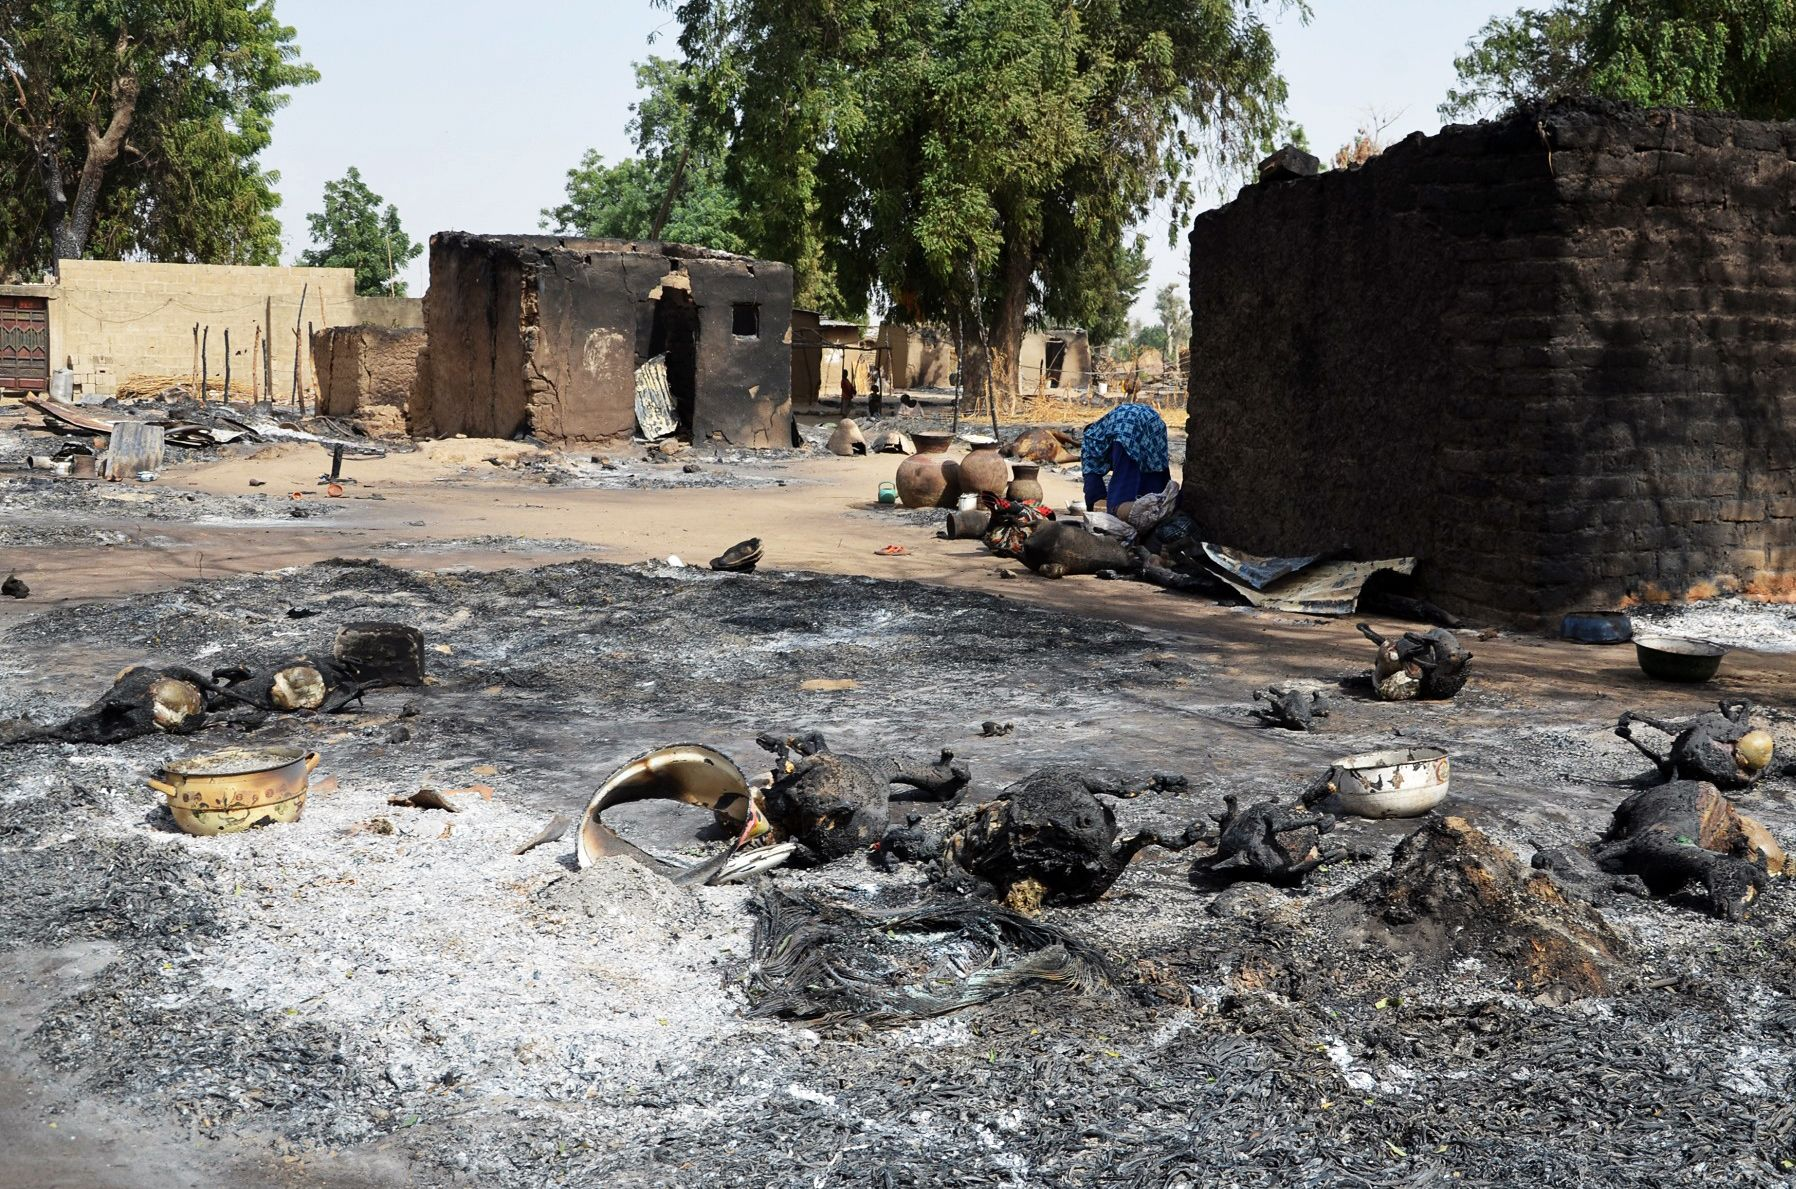 A woman looks through burnt livestock after a Boko Haram attack.